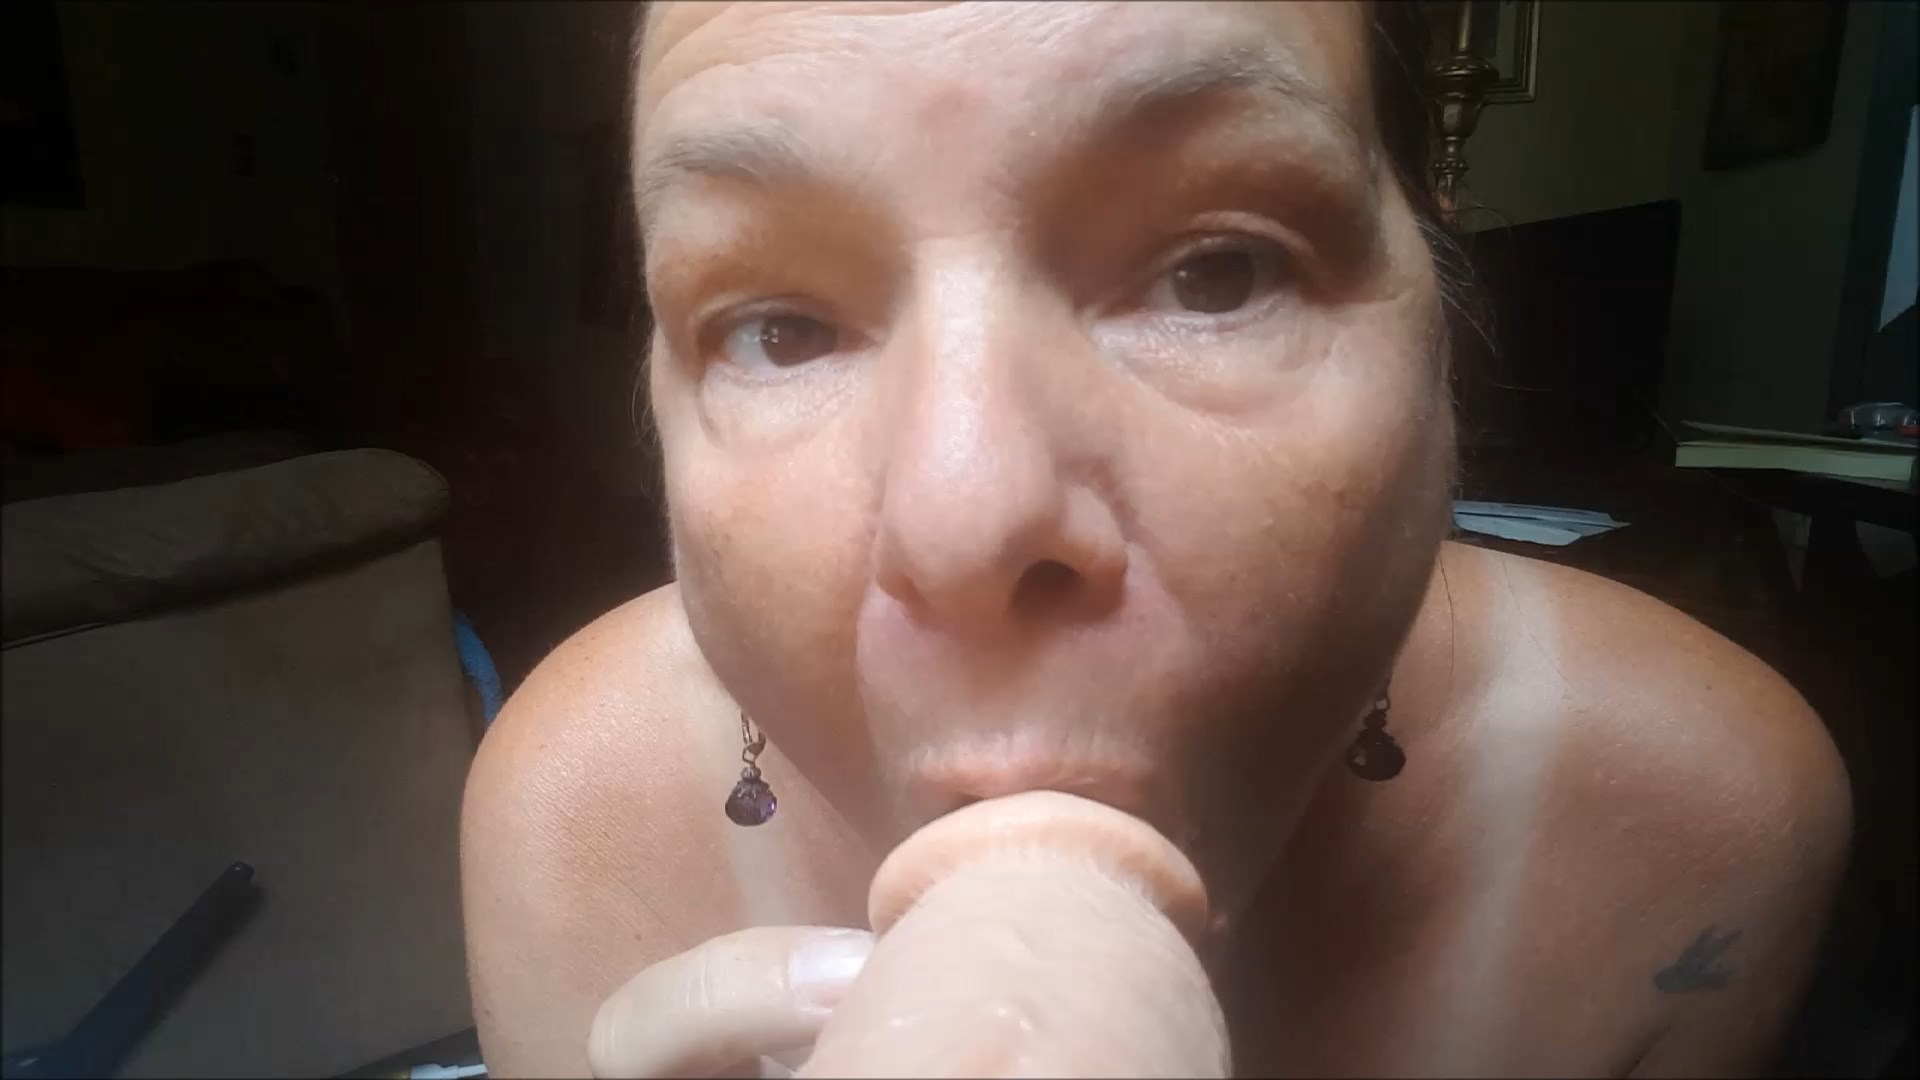 Milf Carrie Moon - Stepmom Carrie Moon - Squirting dildo Blowjob JOI